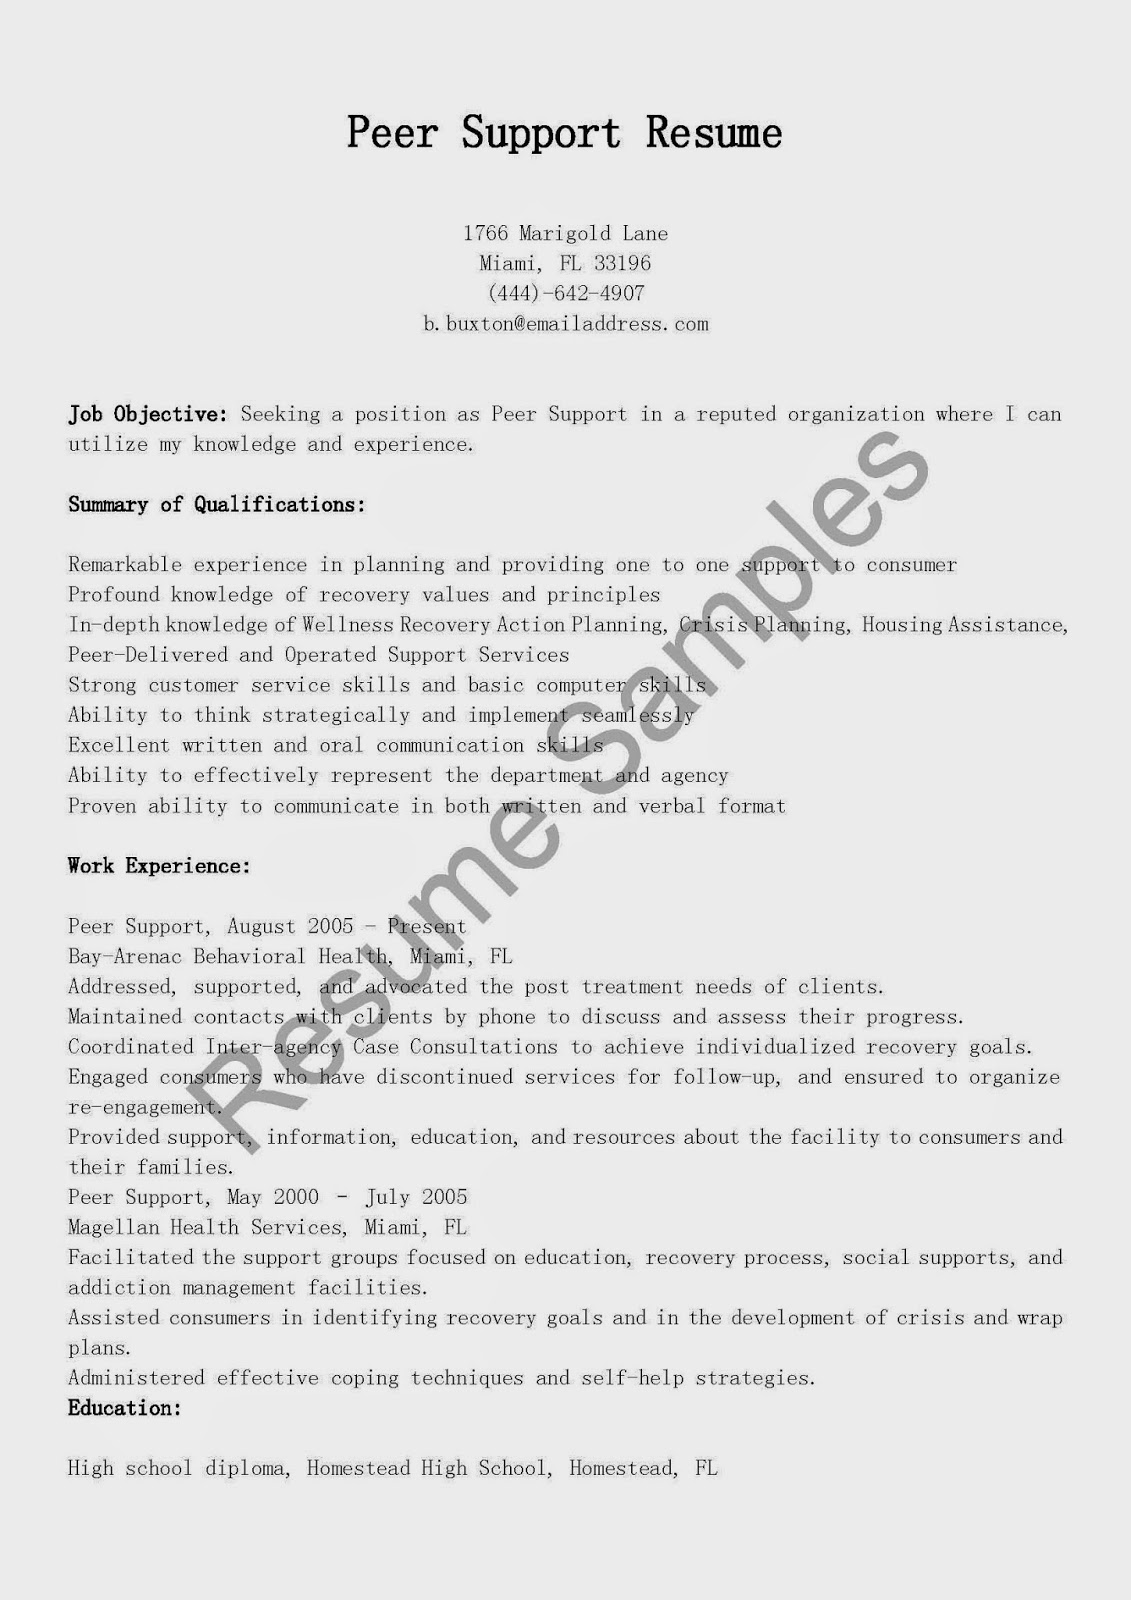 rochester ny resume service yellow pages las vegas resume